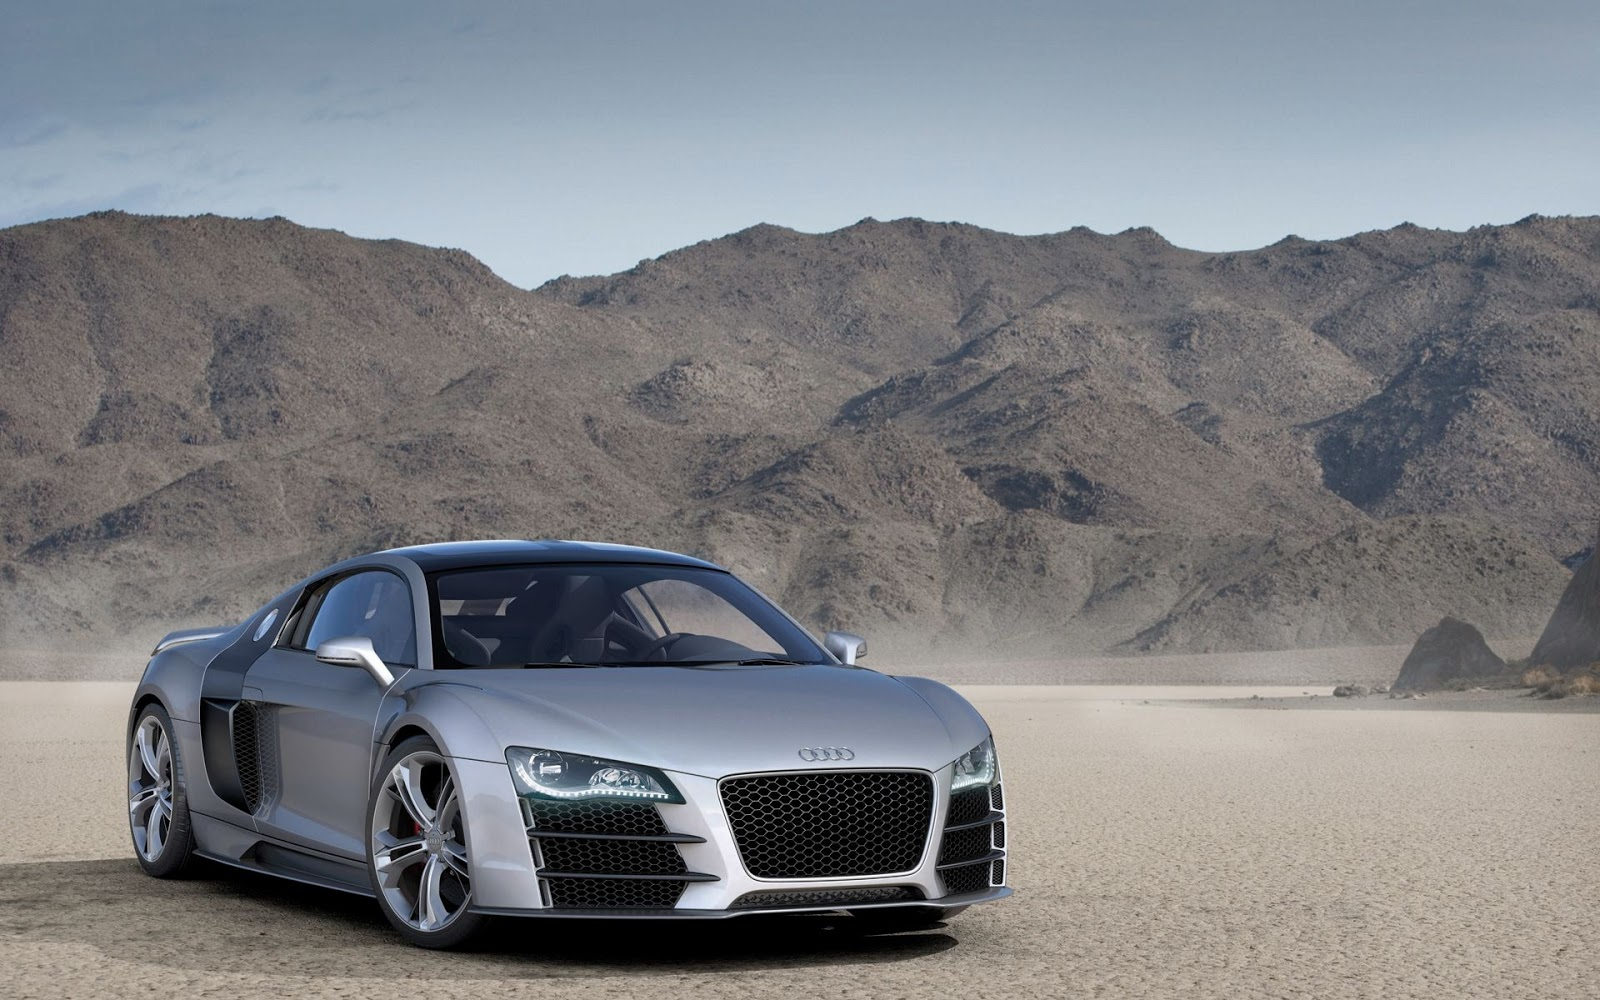 Wallpaper Of Audi Car Sf Wallpaper